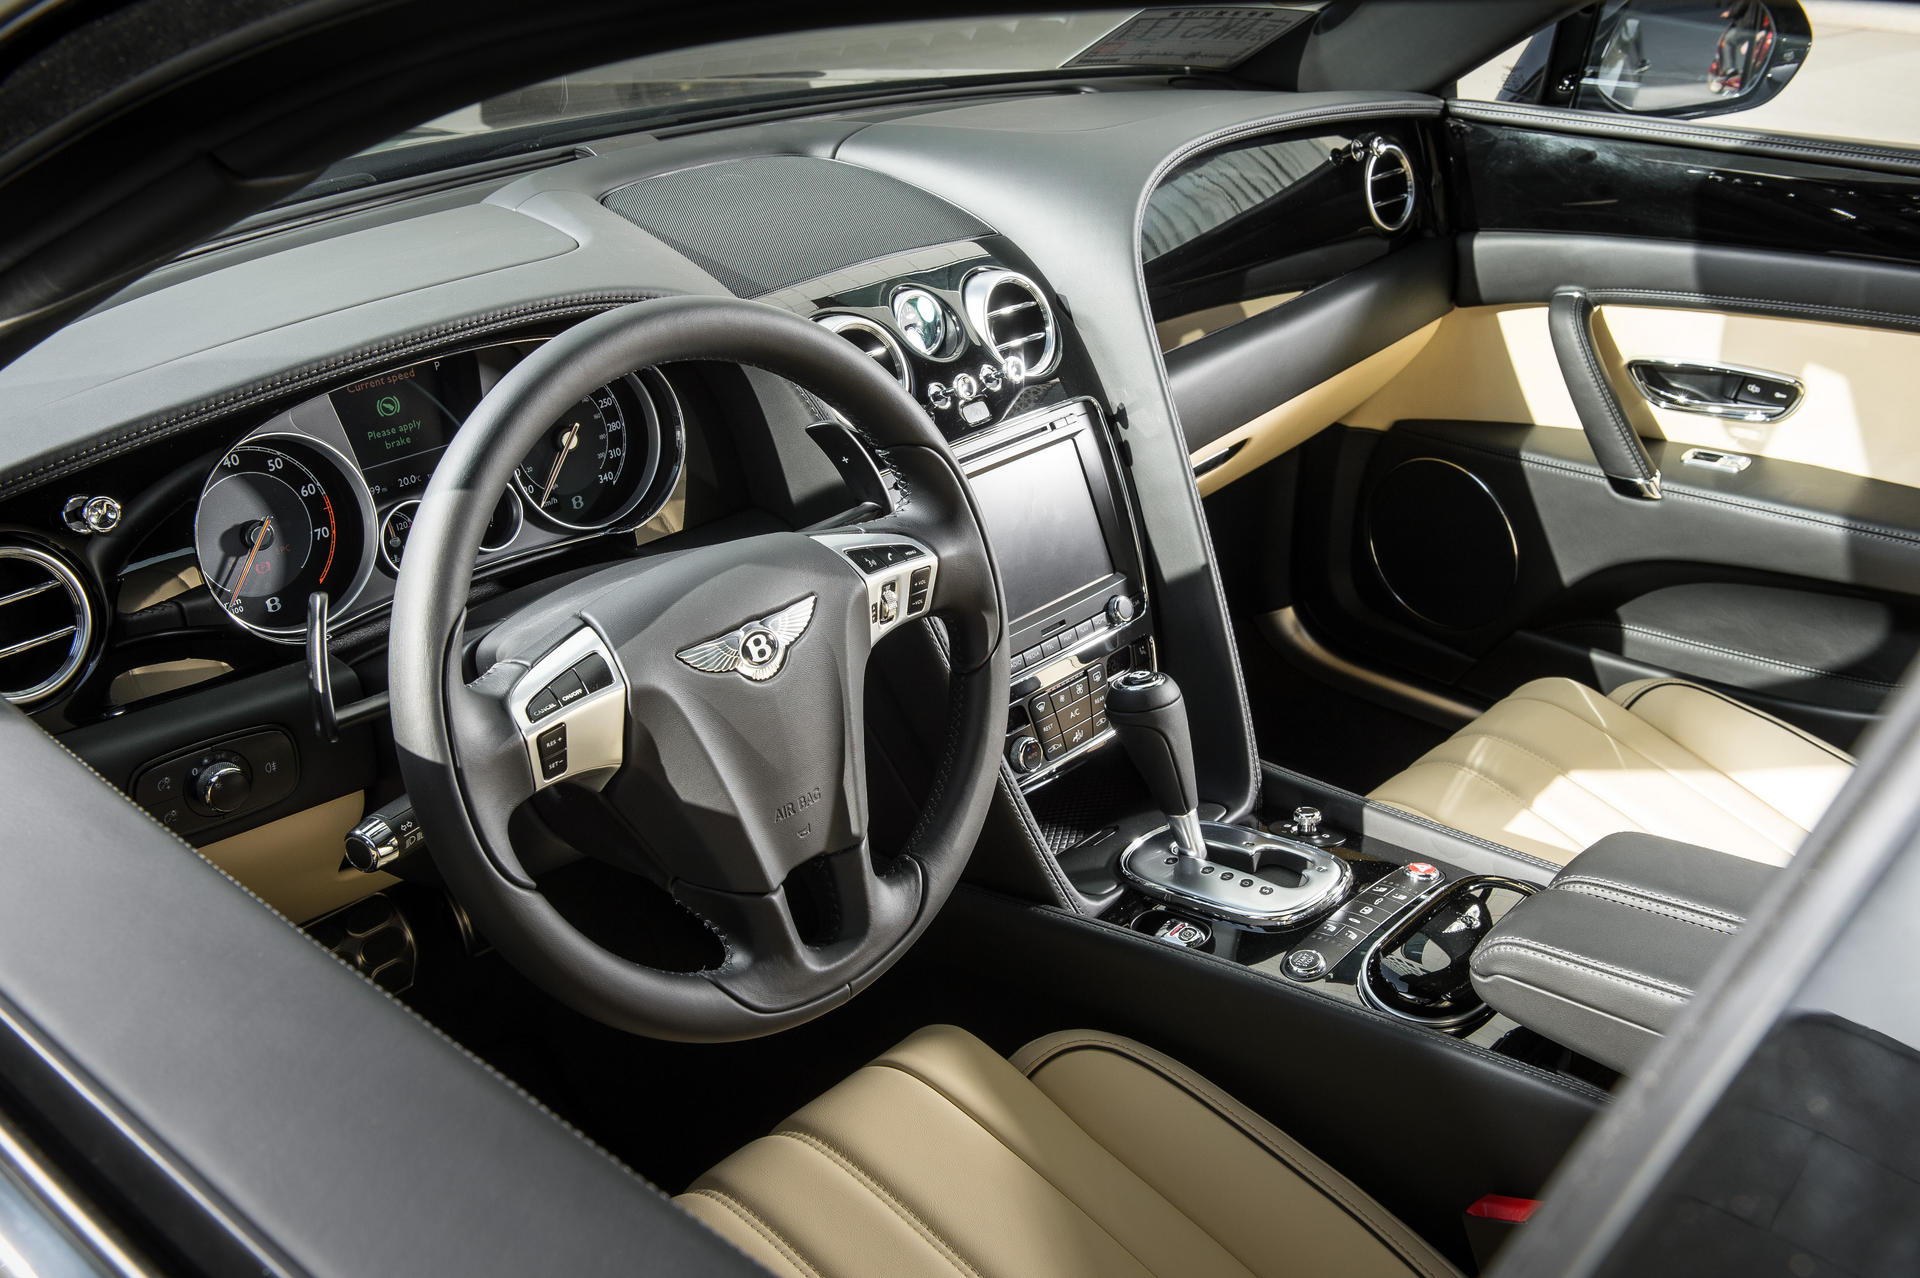 bentley 39 s flying spur an elegant evolution south china morning post. Black Bedroom Furniture Sets. Home Design Ideas